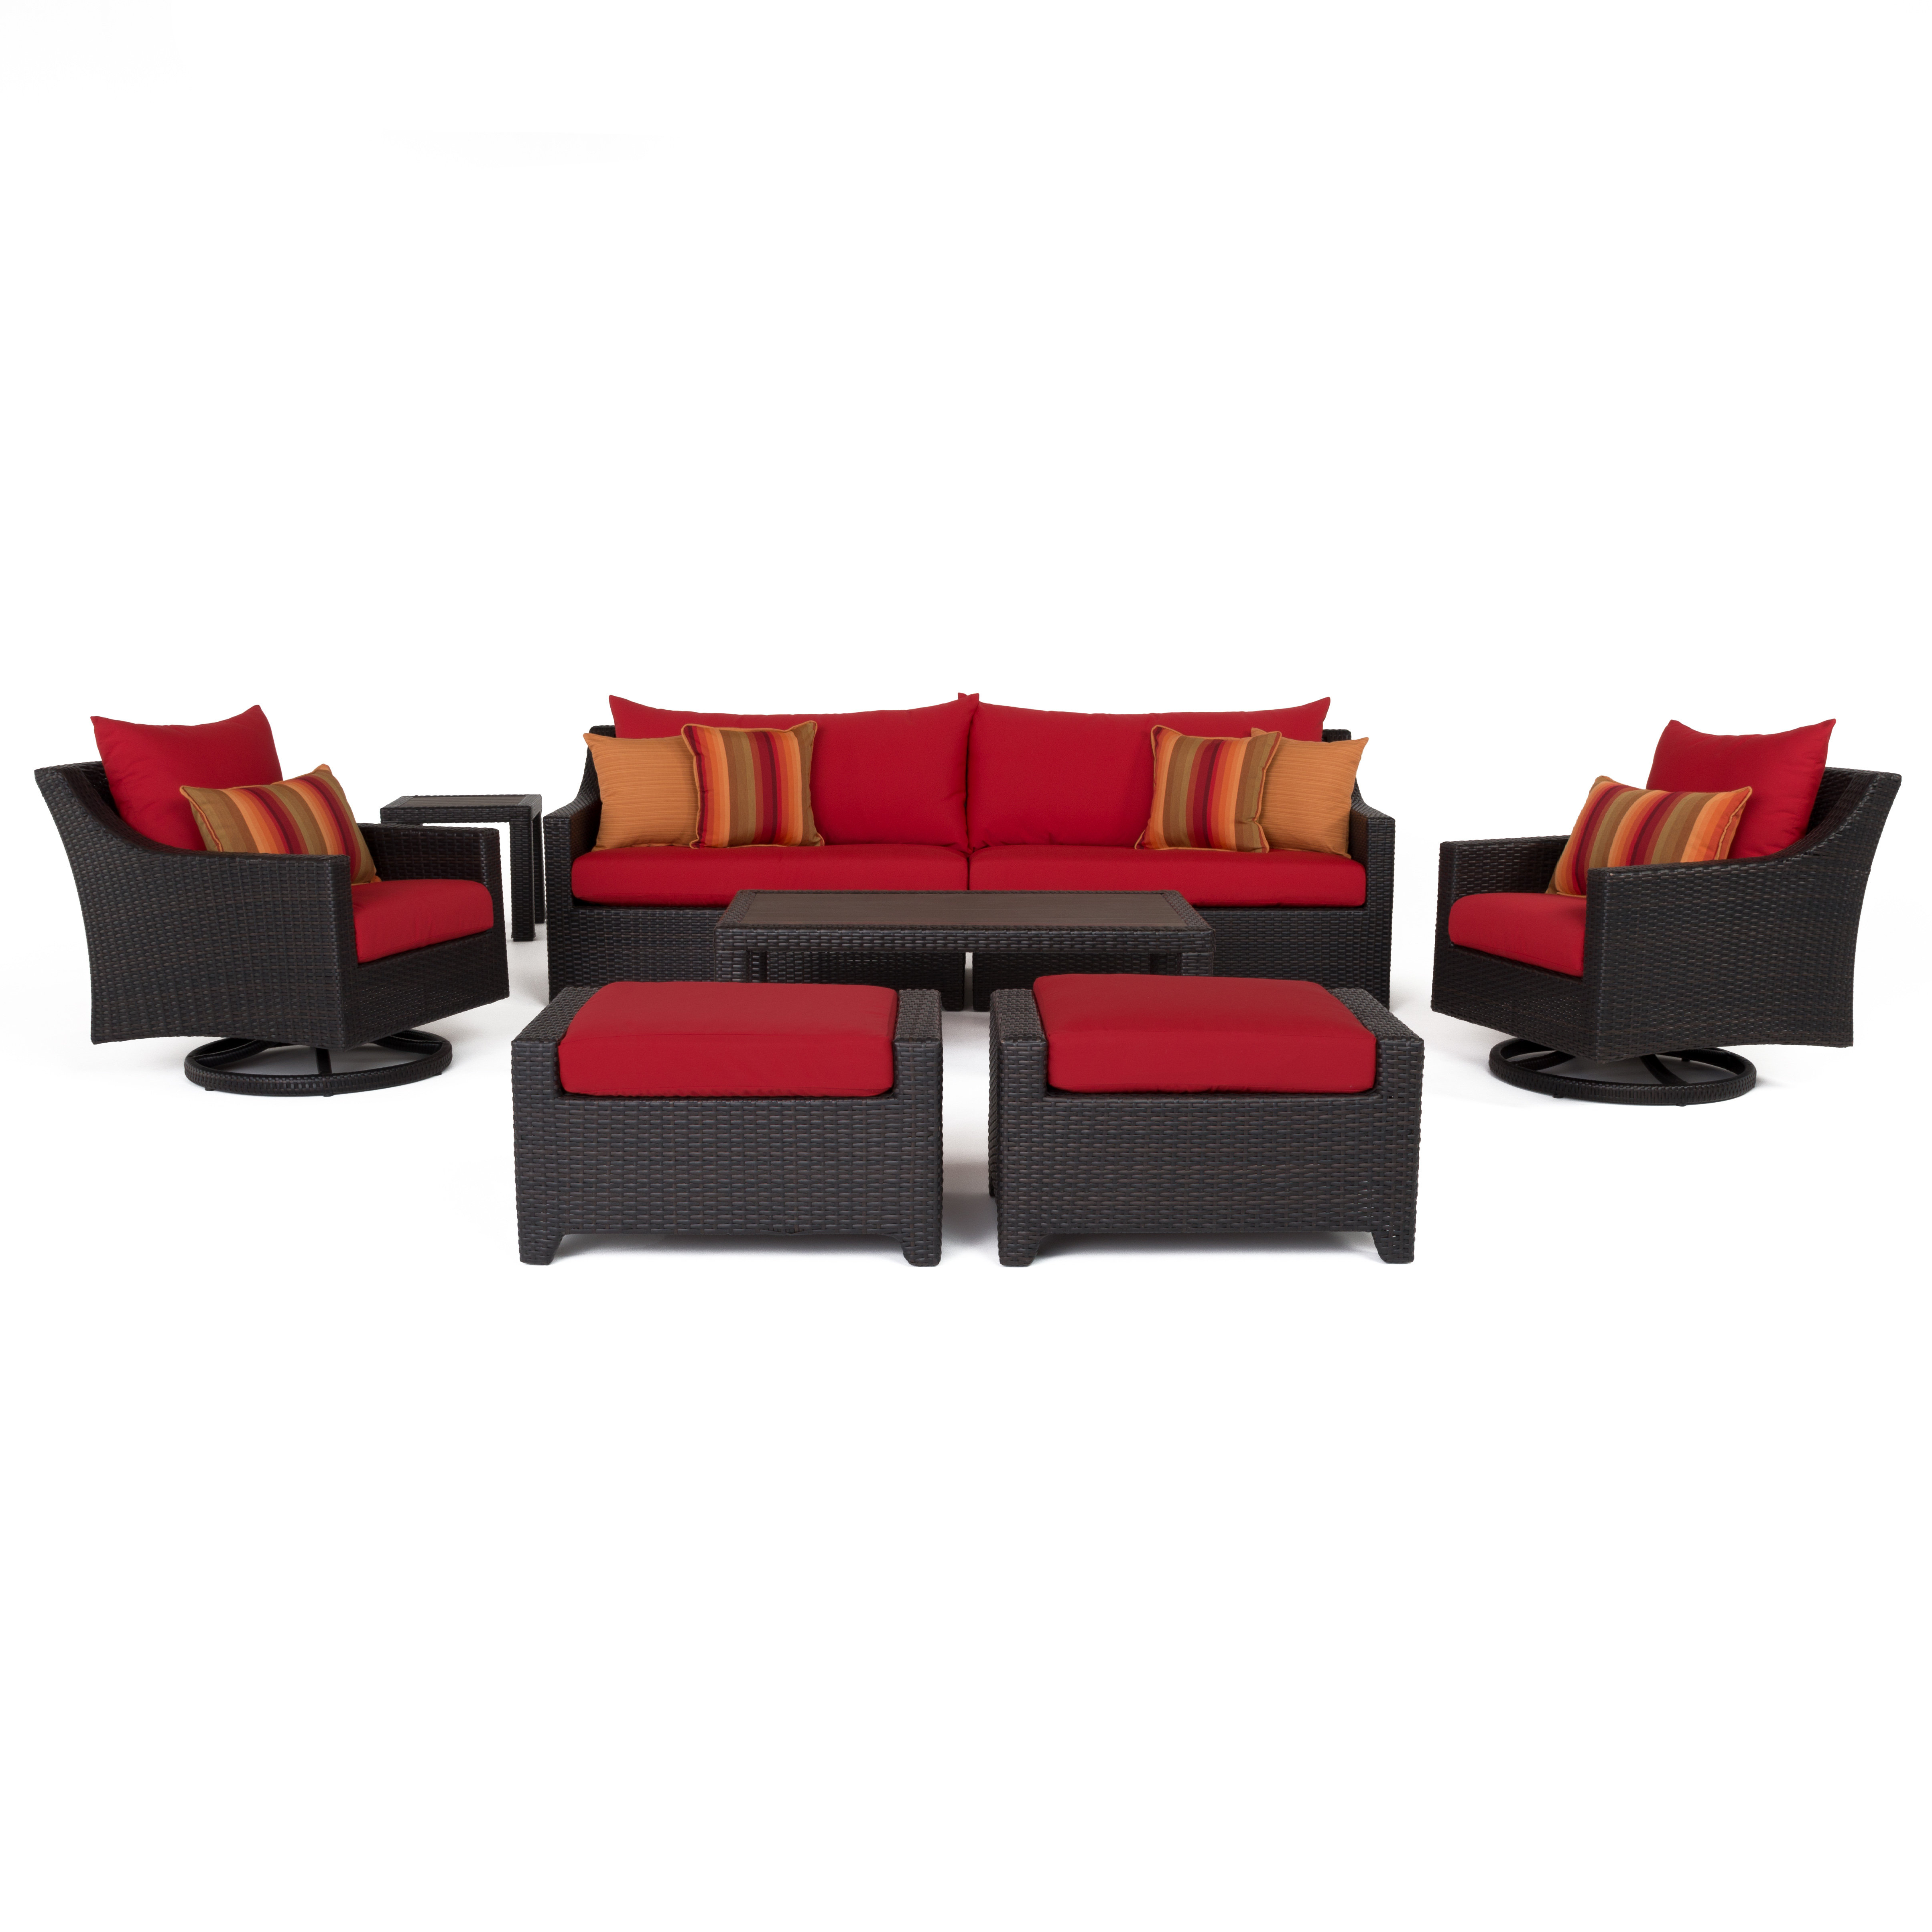 Northridge 8 Piece Sofa Set With Cushions In Recent Northridge Patio Sofas With Sunbrella Cushions (Gallery 11 of 20)